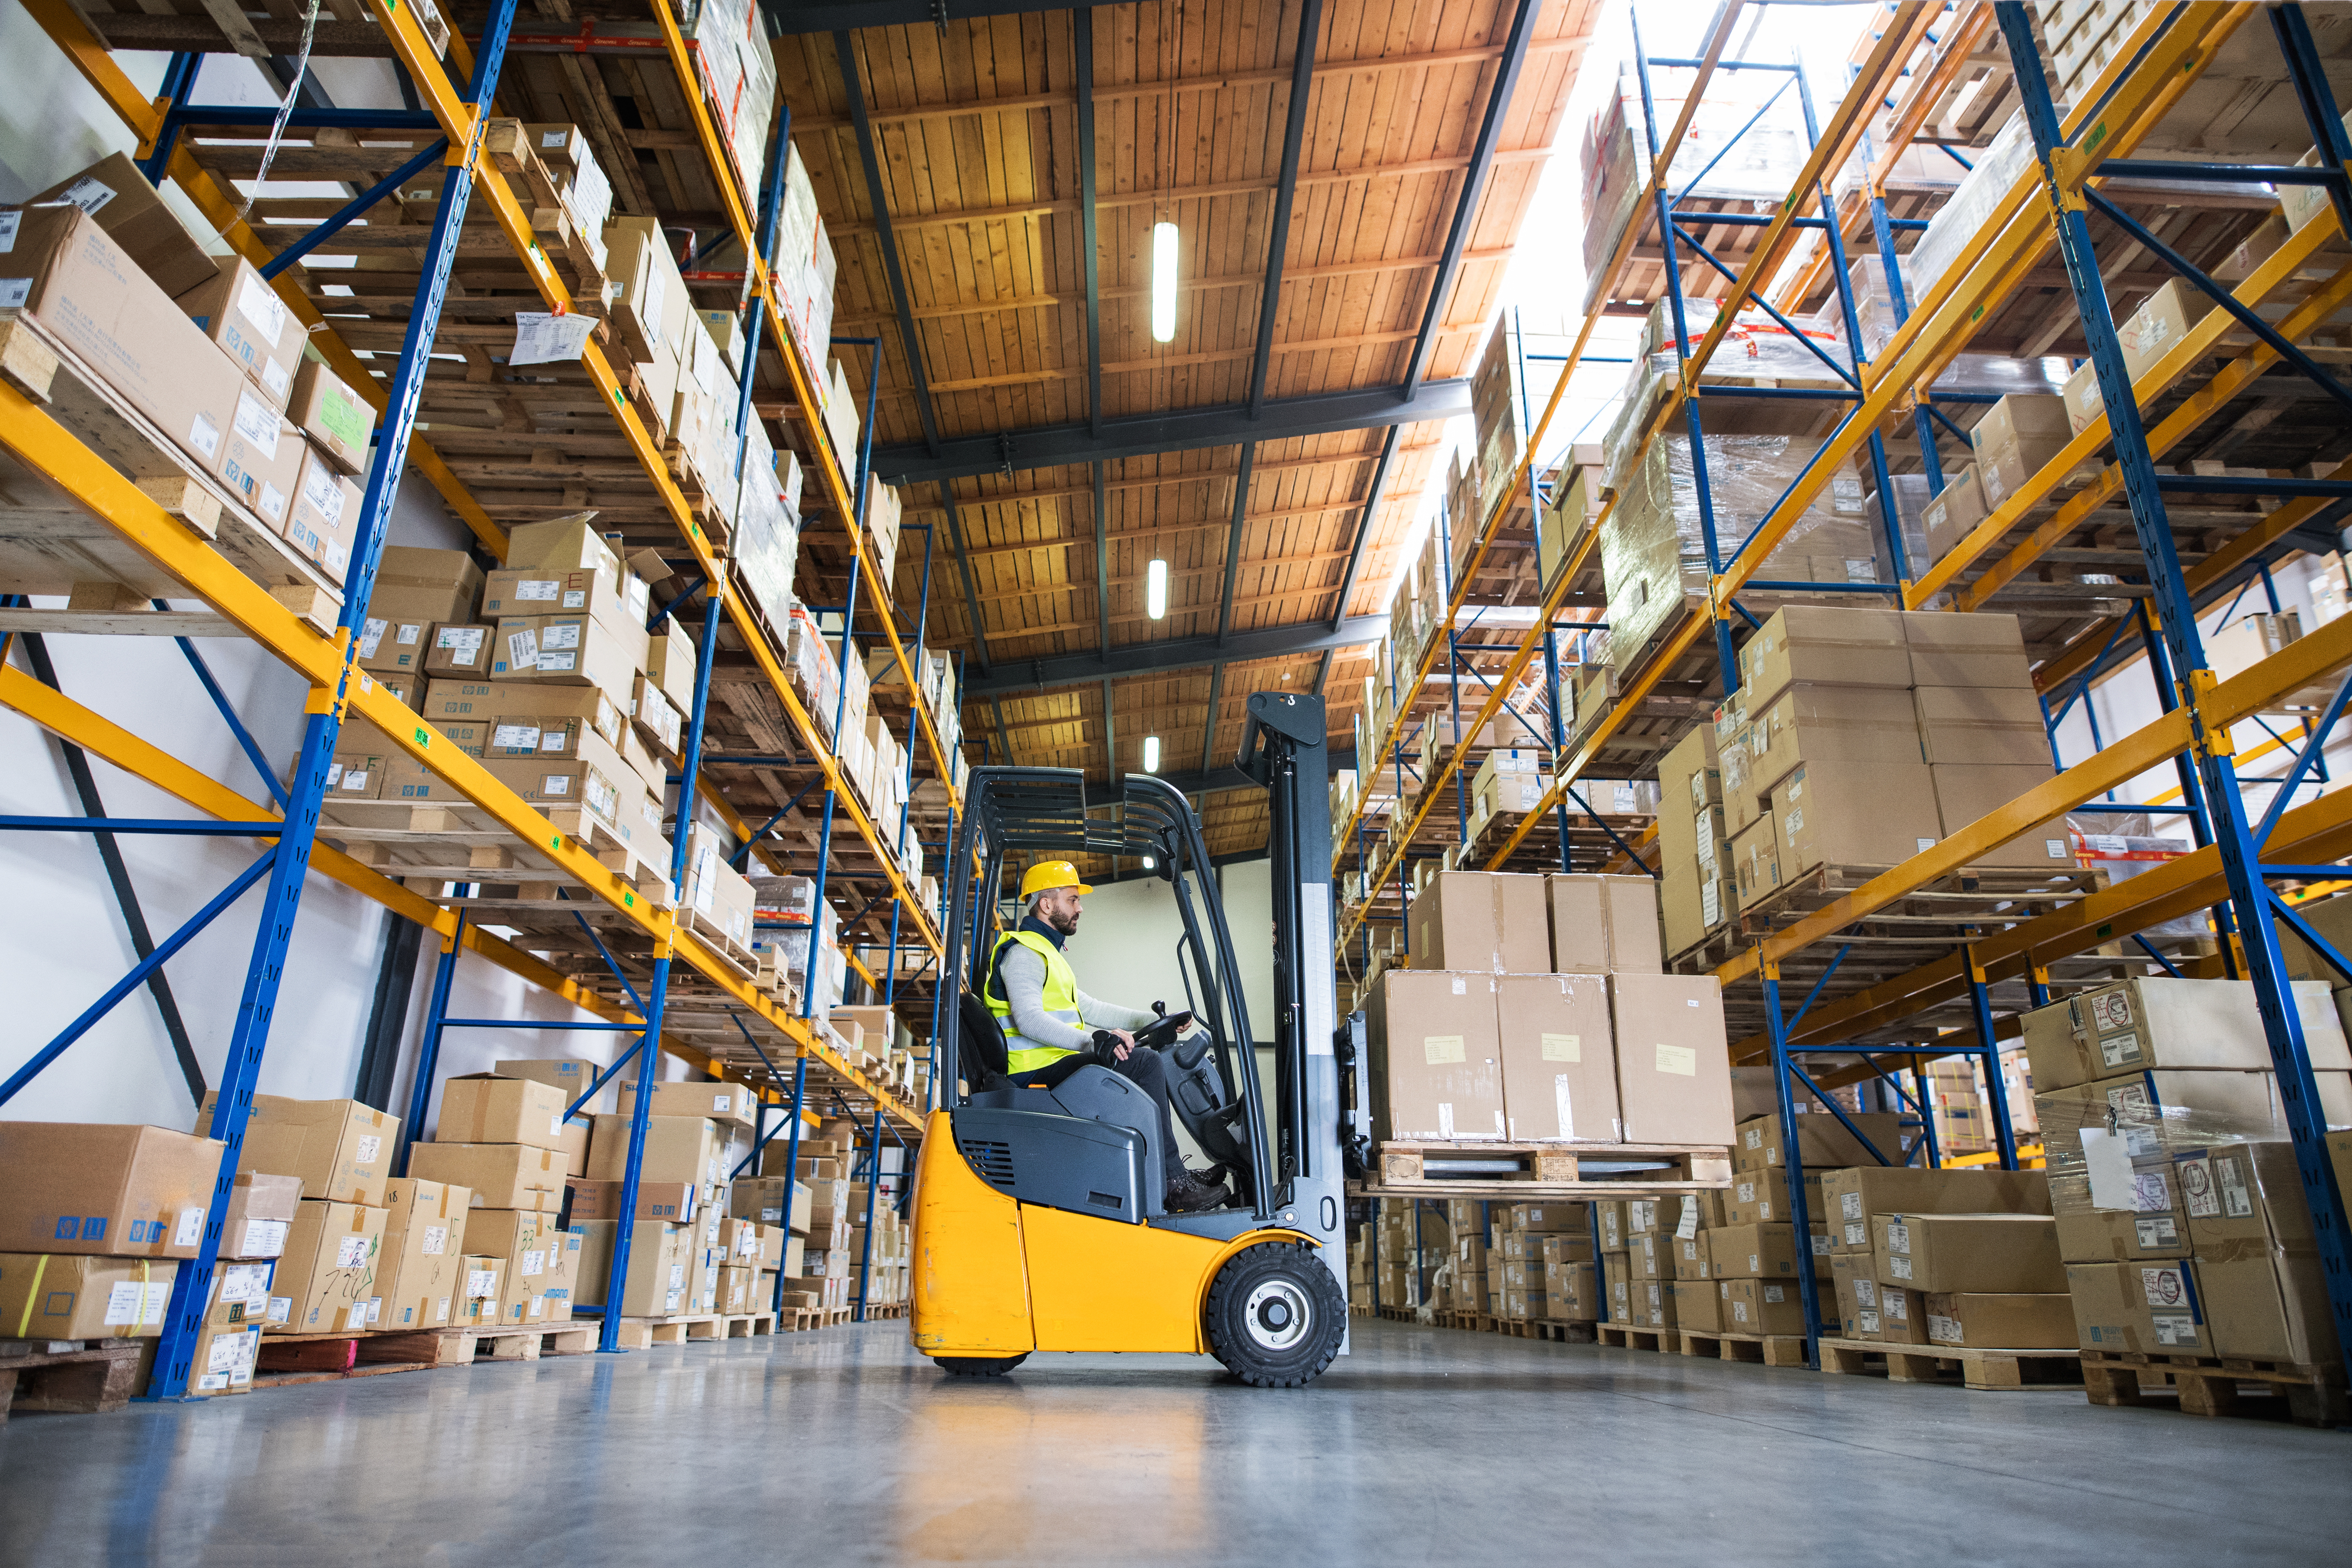 A Guide to Weighing in a Warehousing and Logistics Environment